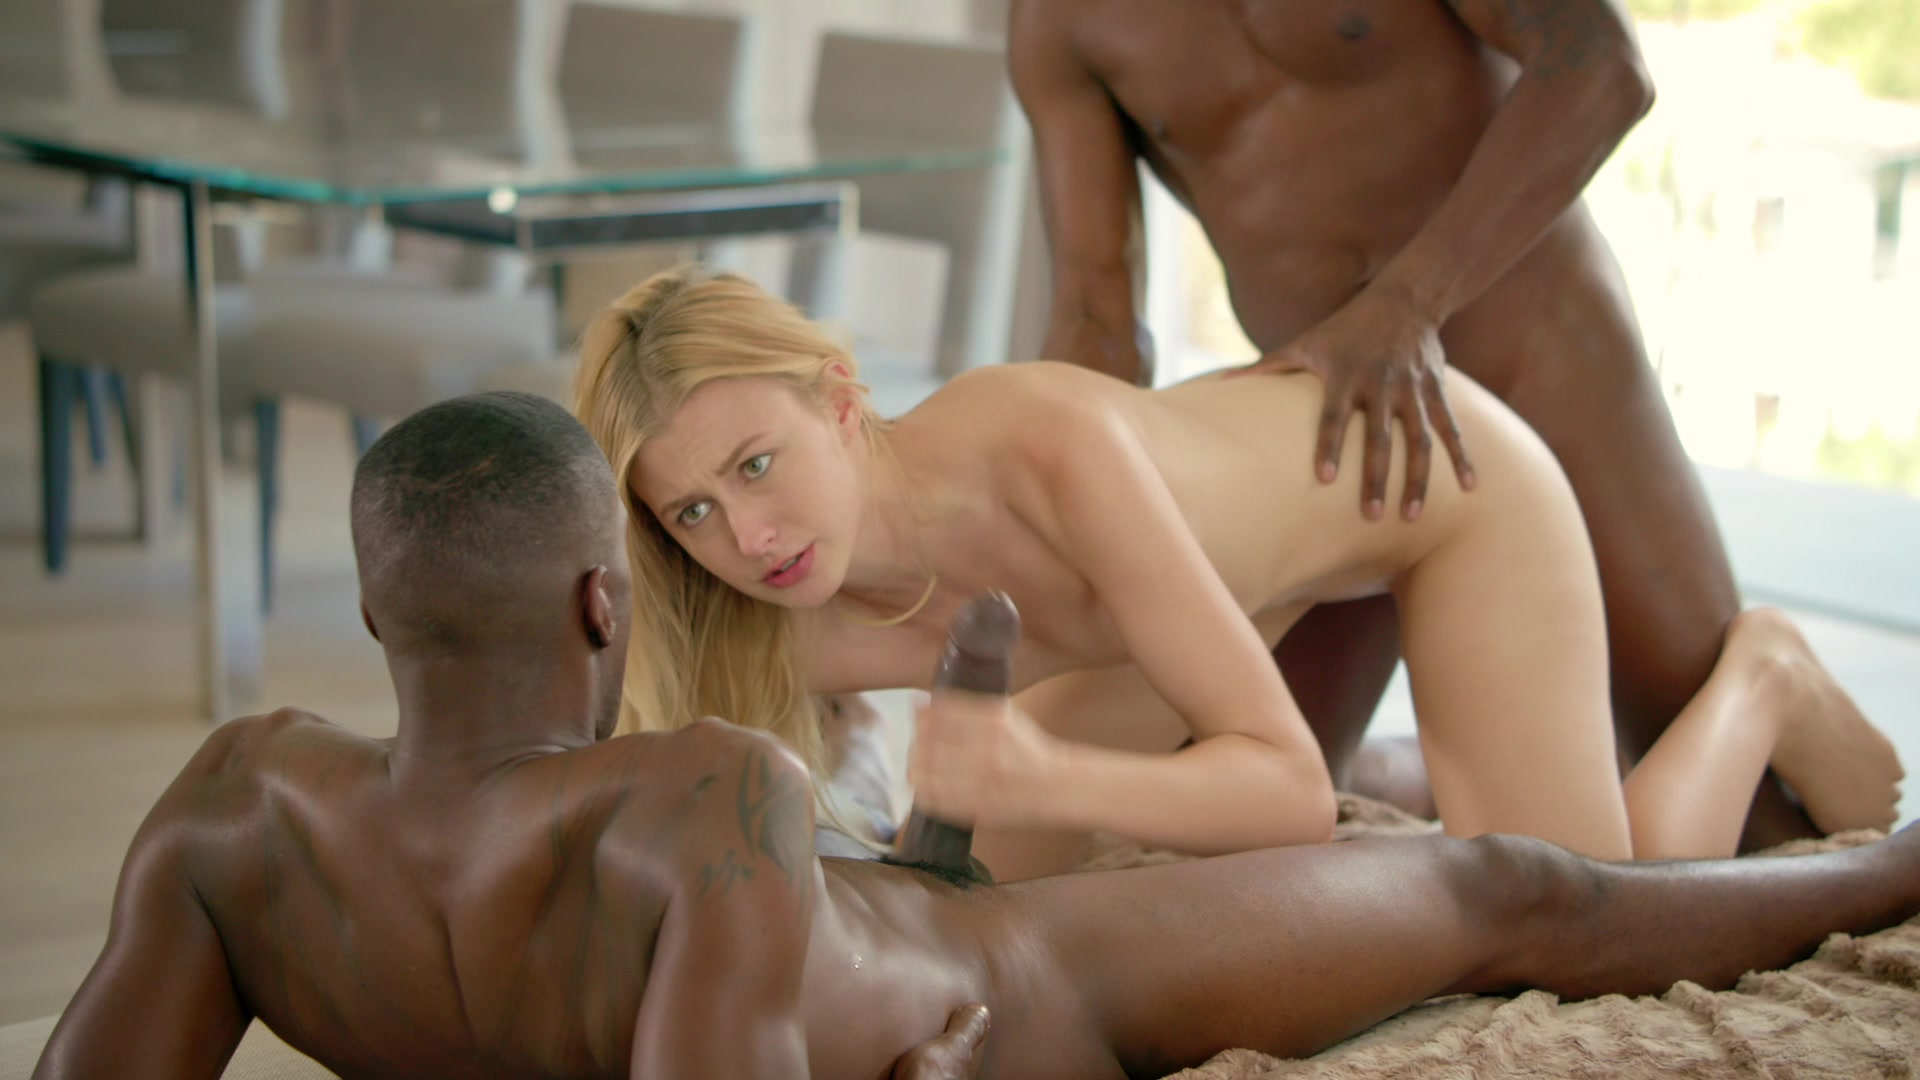 hot housewife marhti sexy video download